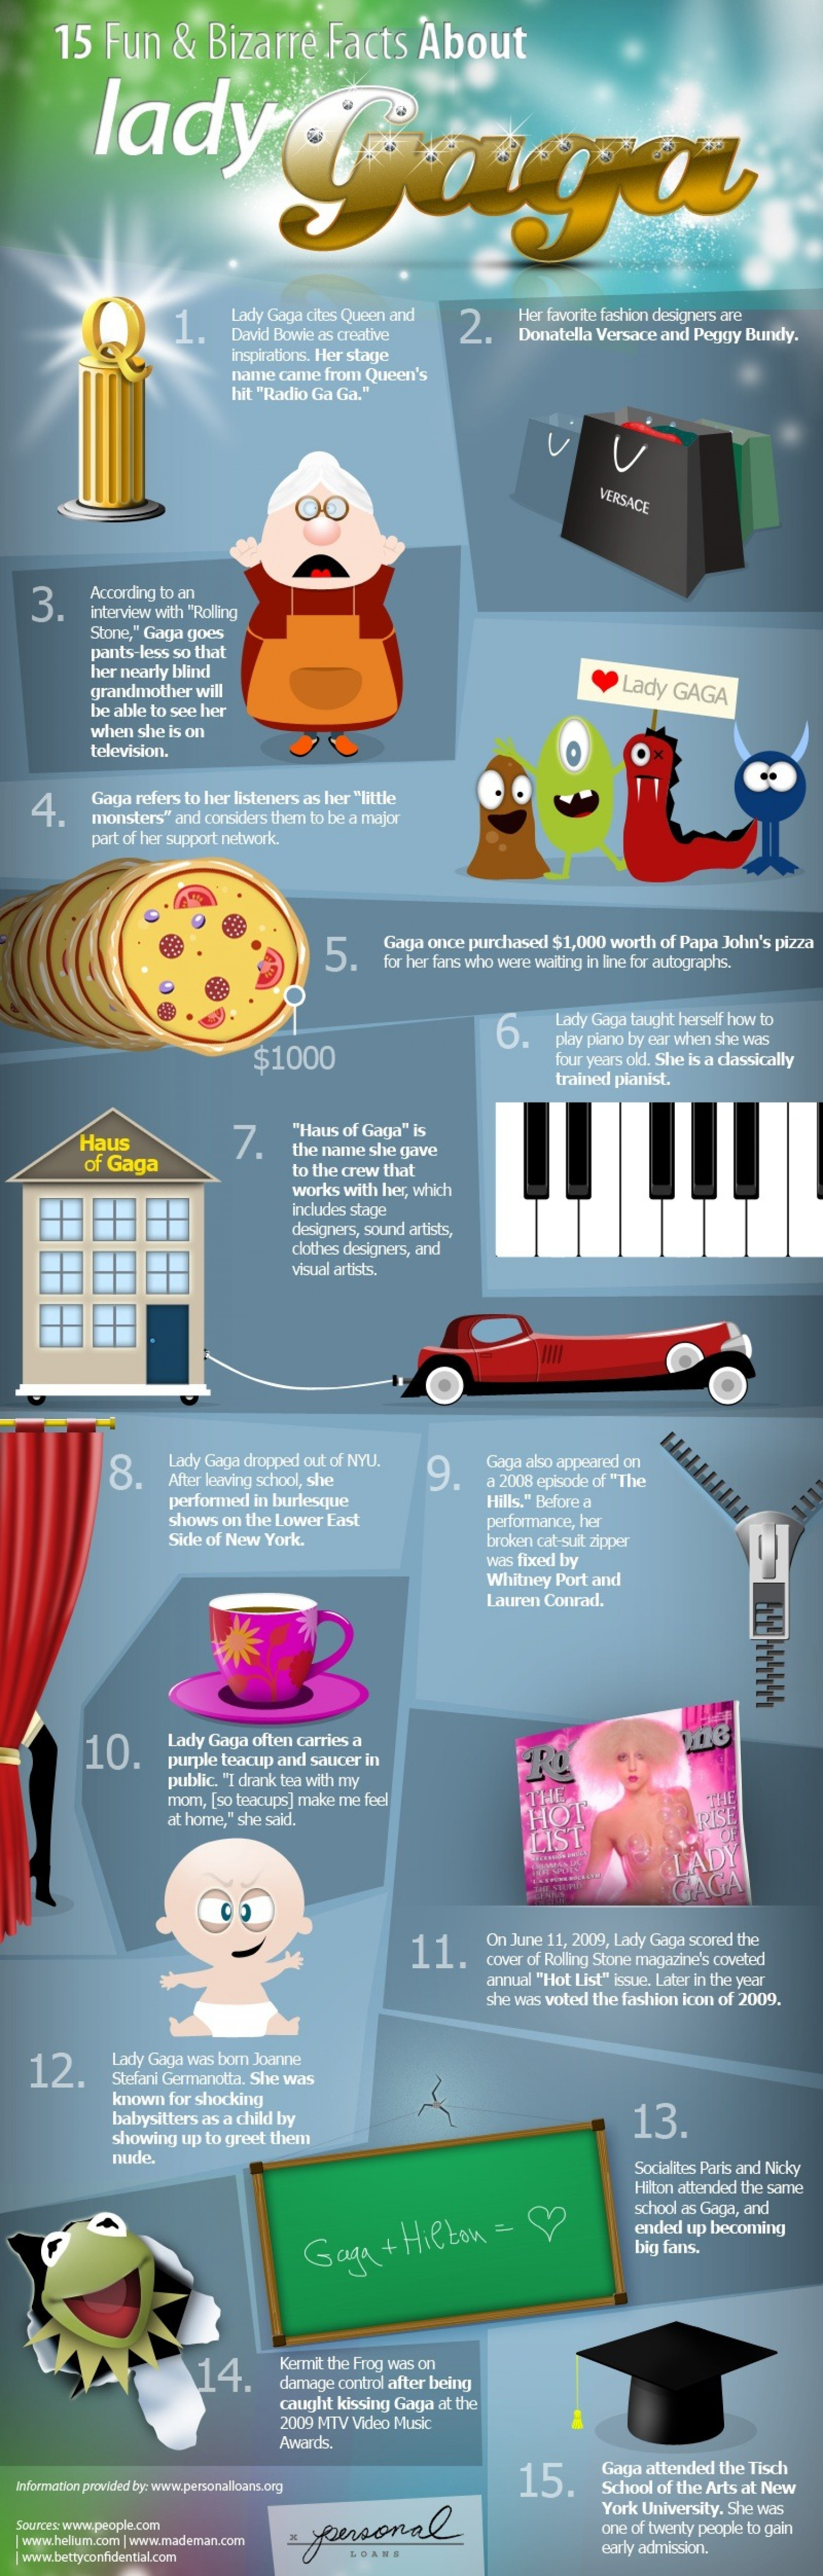 15 Fun and Bizarre Facts Abou Lady Gaga  Infographic